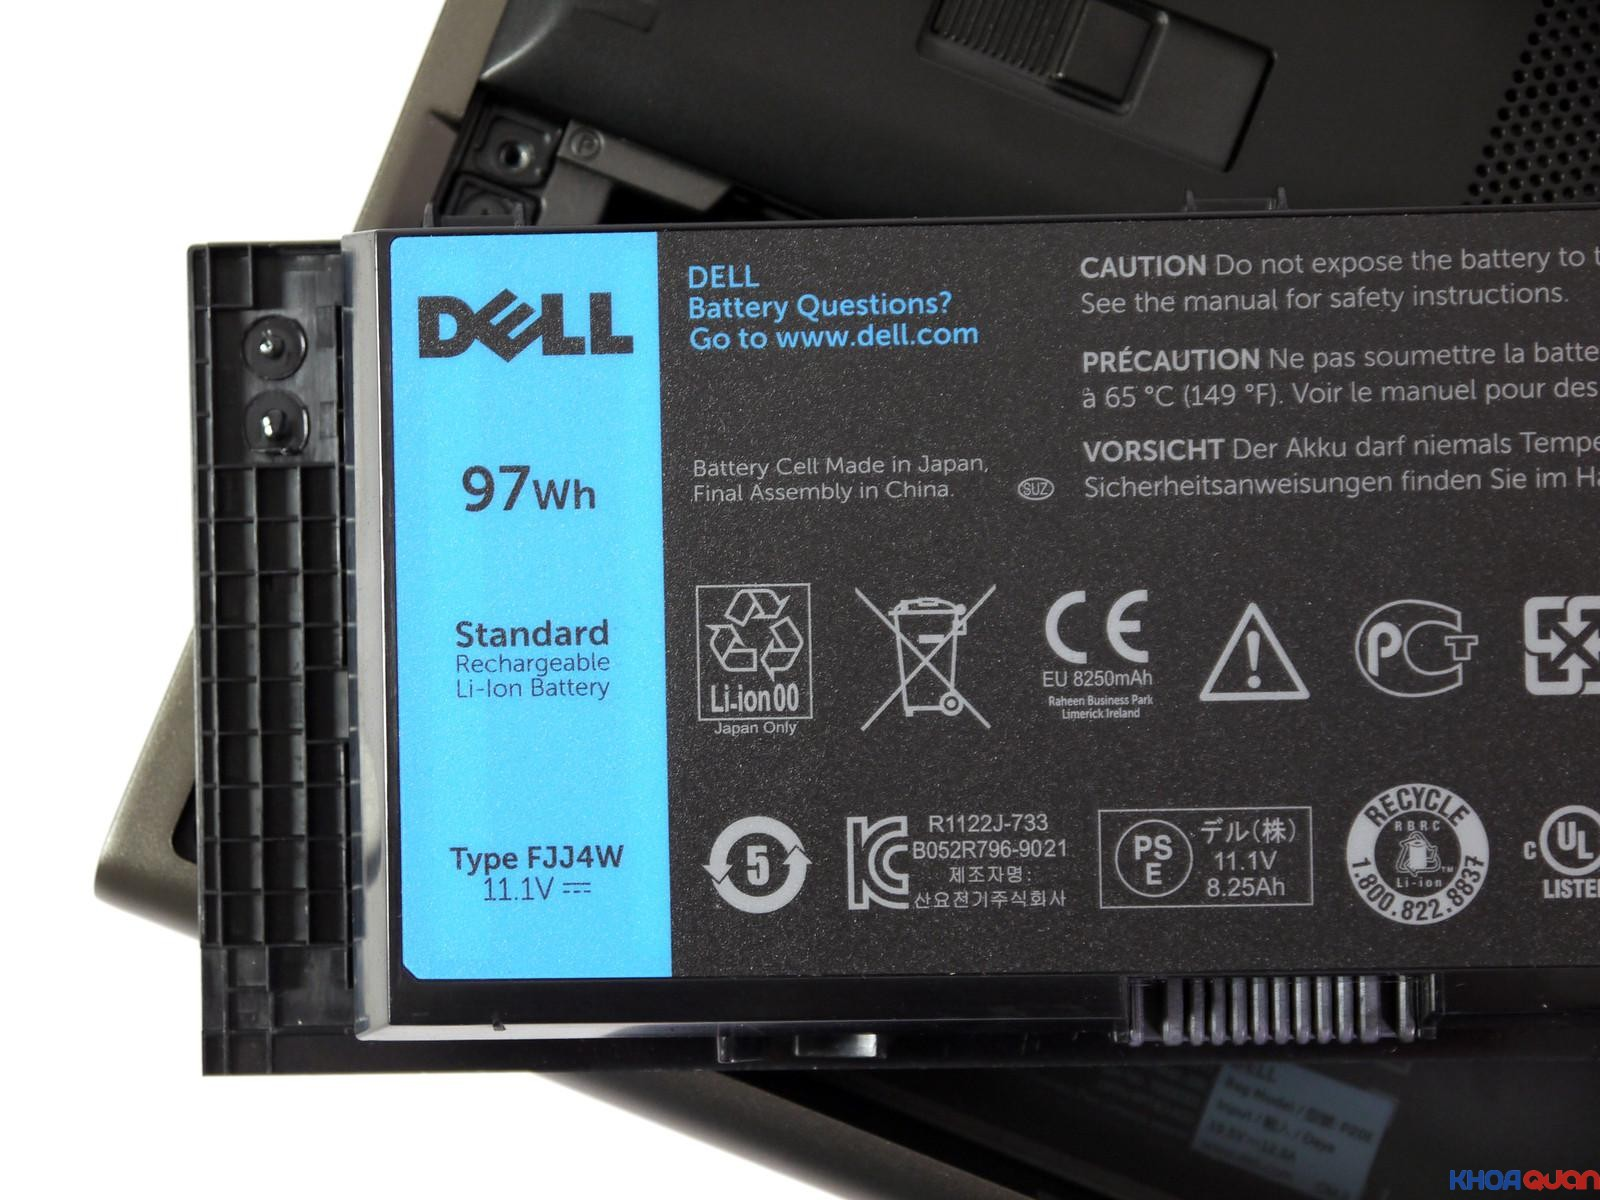 danh-gia-chi-tiet-laptop-dell-workstation-m6800.6